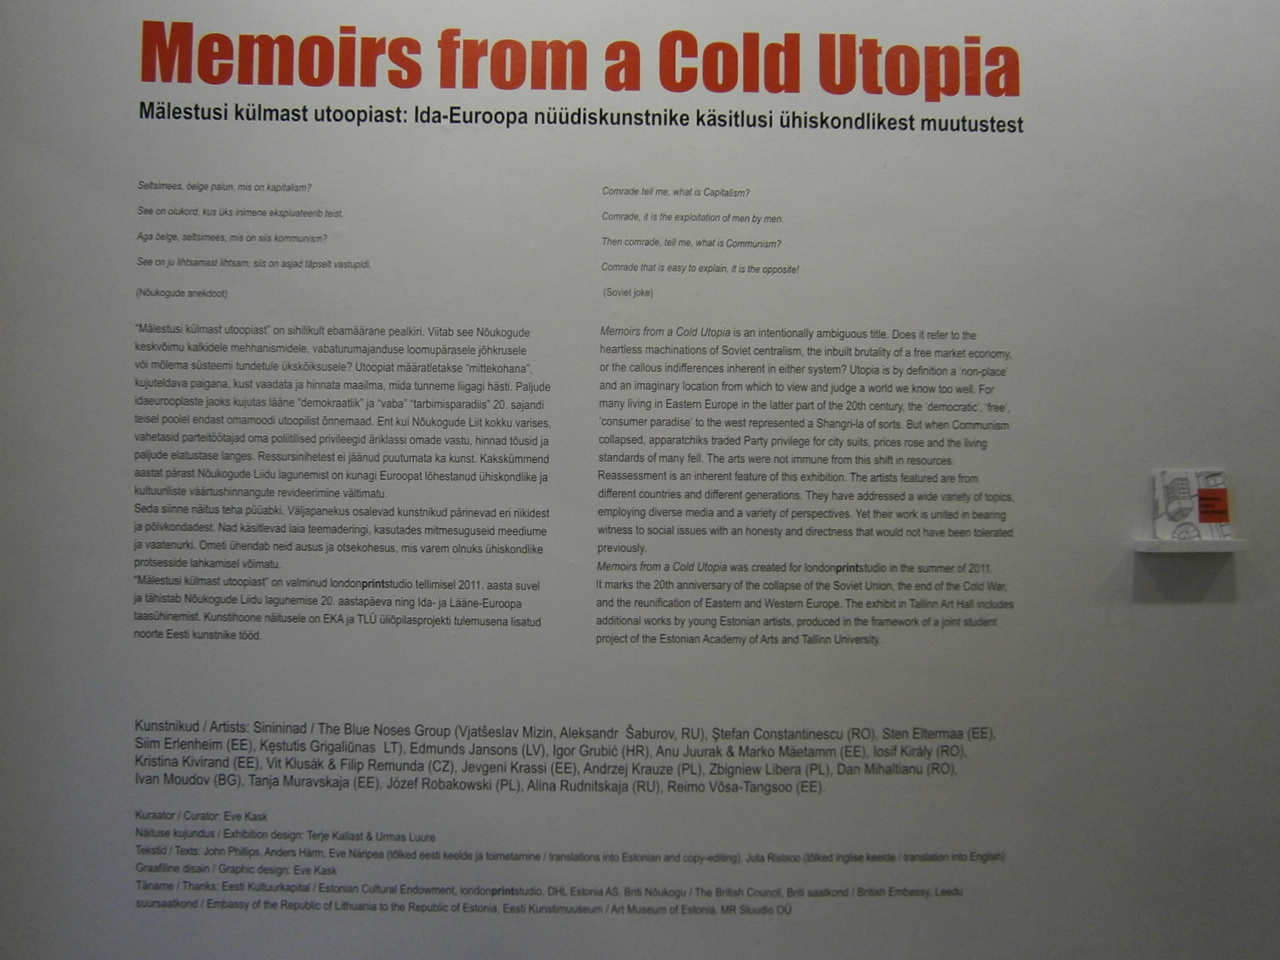 memoirs from a cold utopia at tallinn art hall cuisine of life as